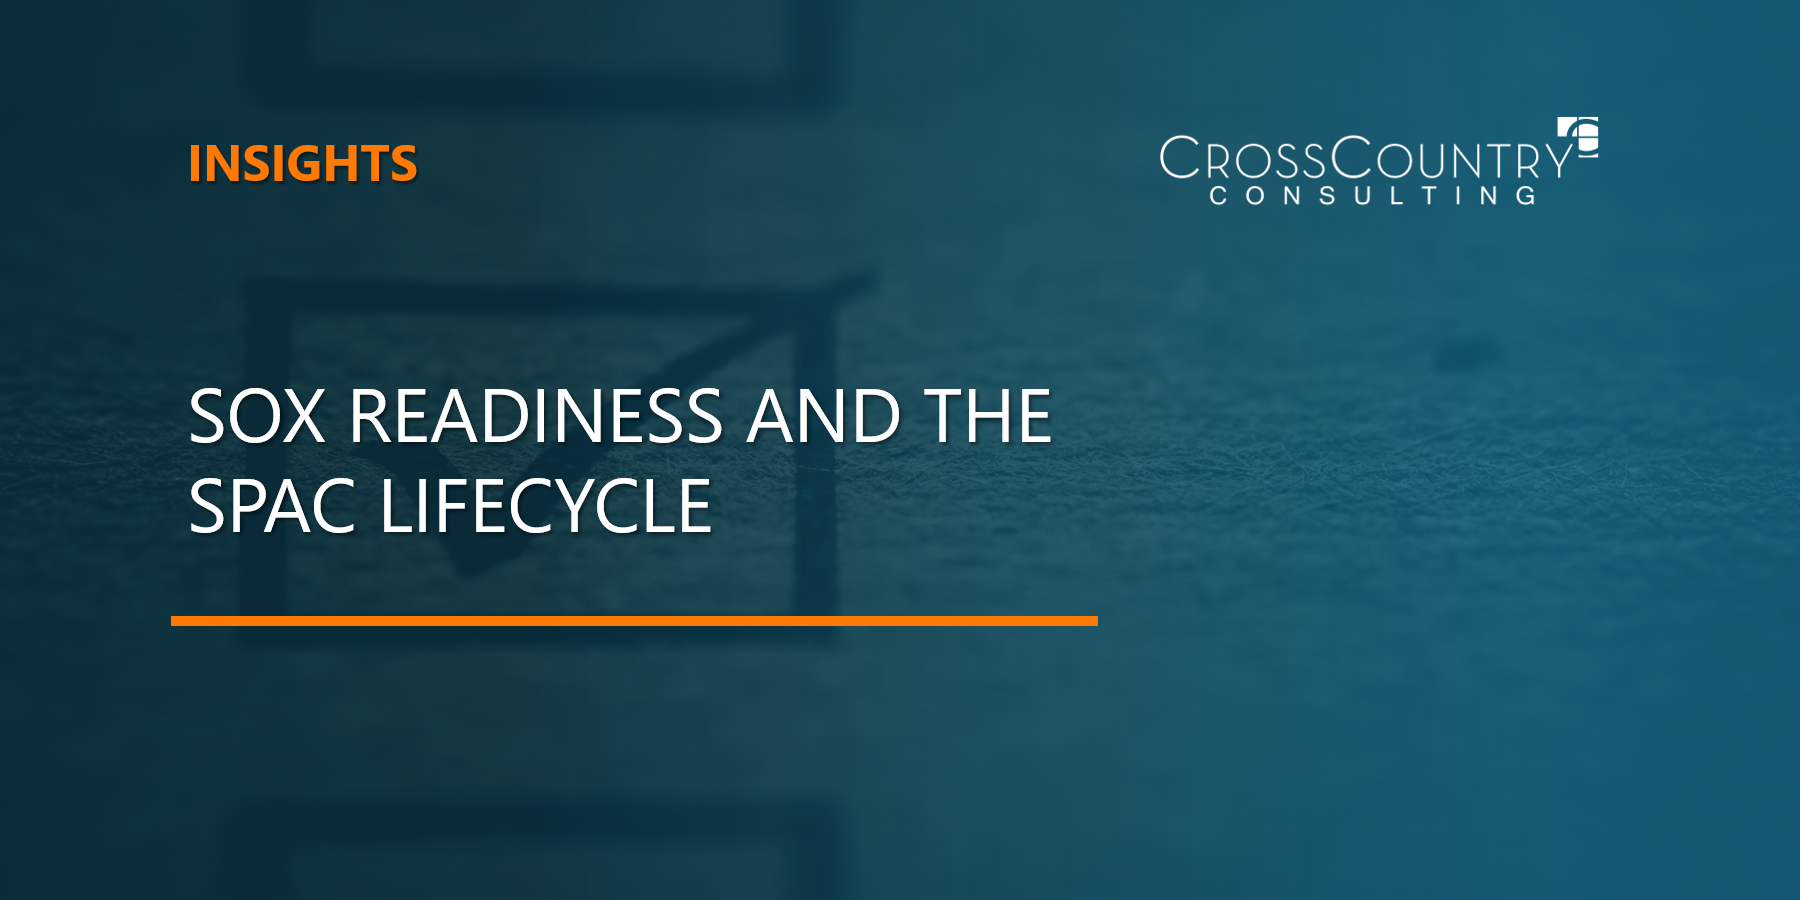 SOX Readiness and the SPAC Lifecycle